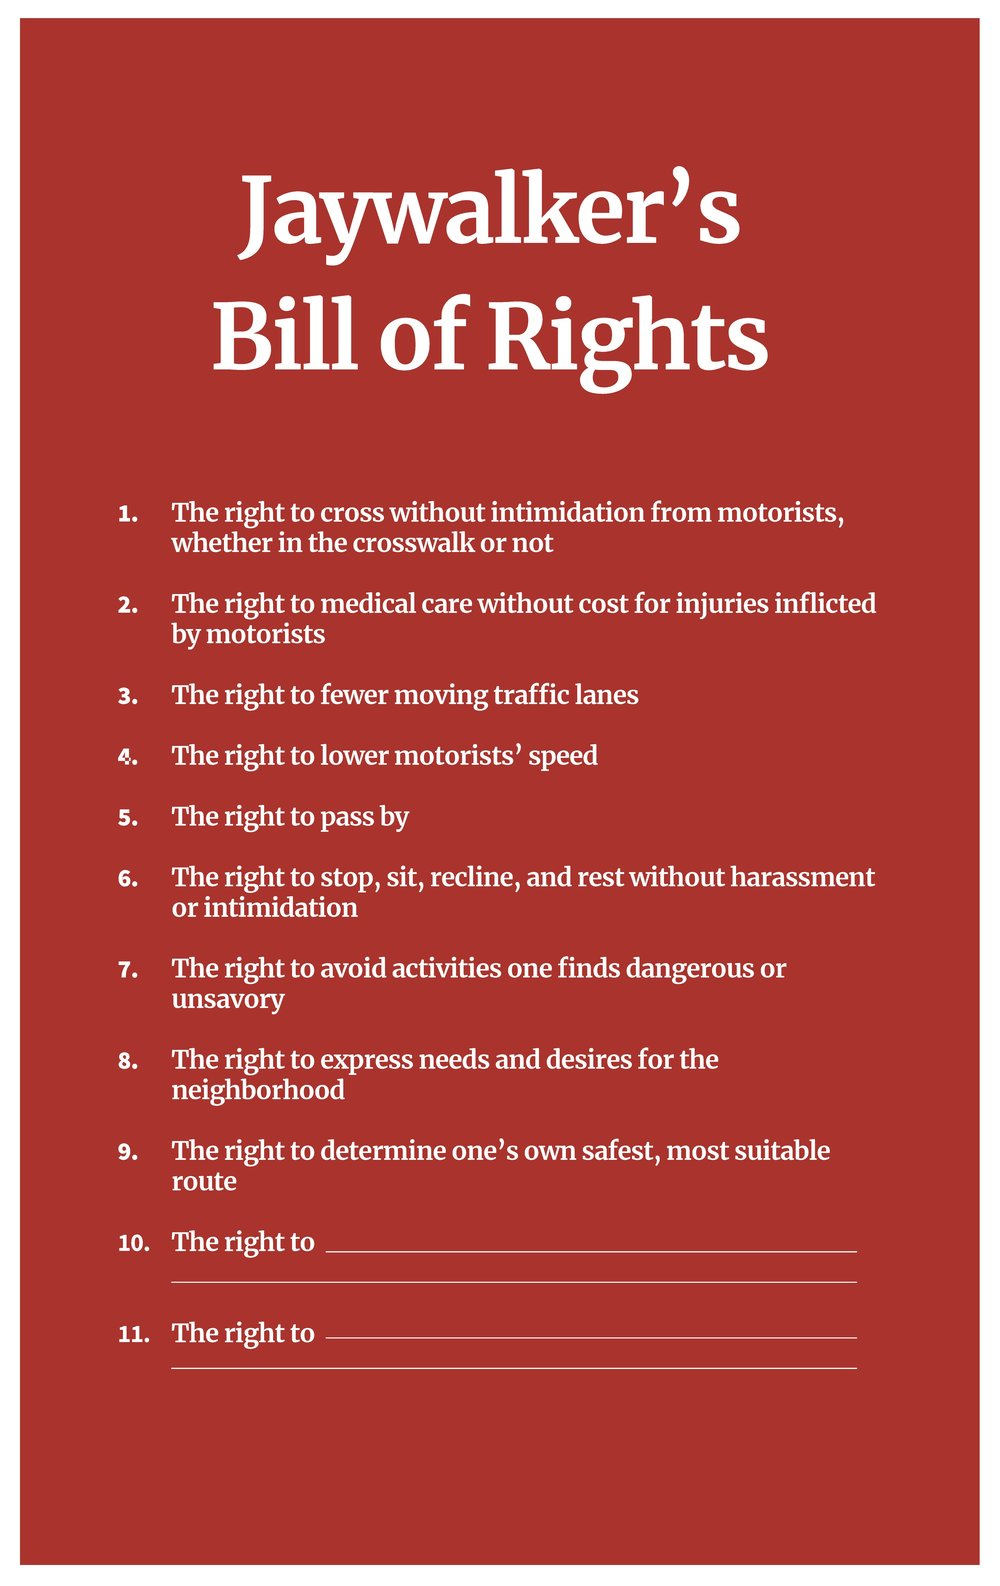 Jaywalker Bill of Rights_Page_2.jpg